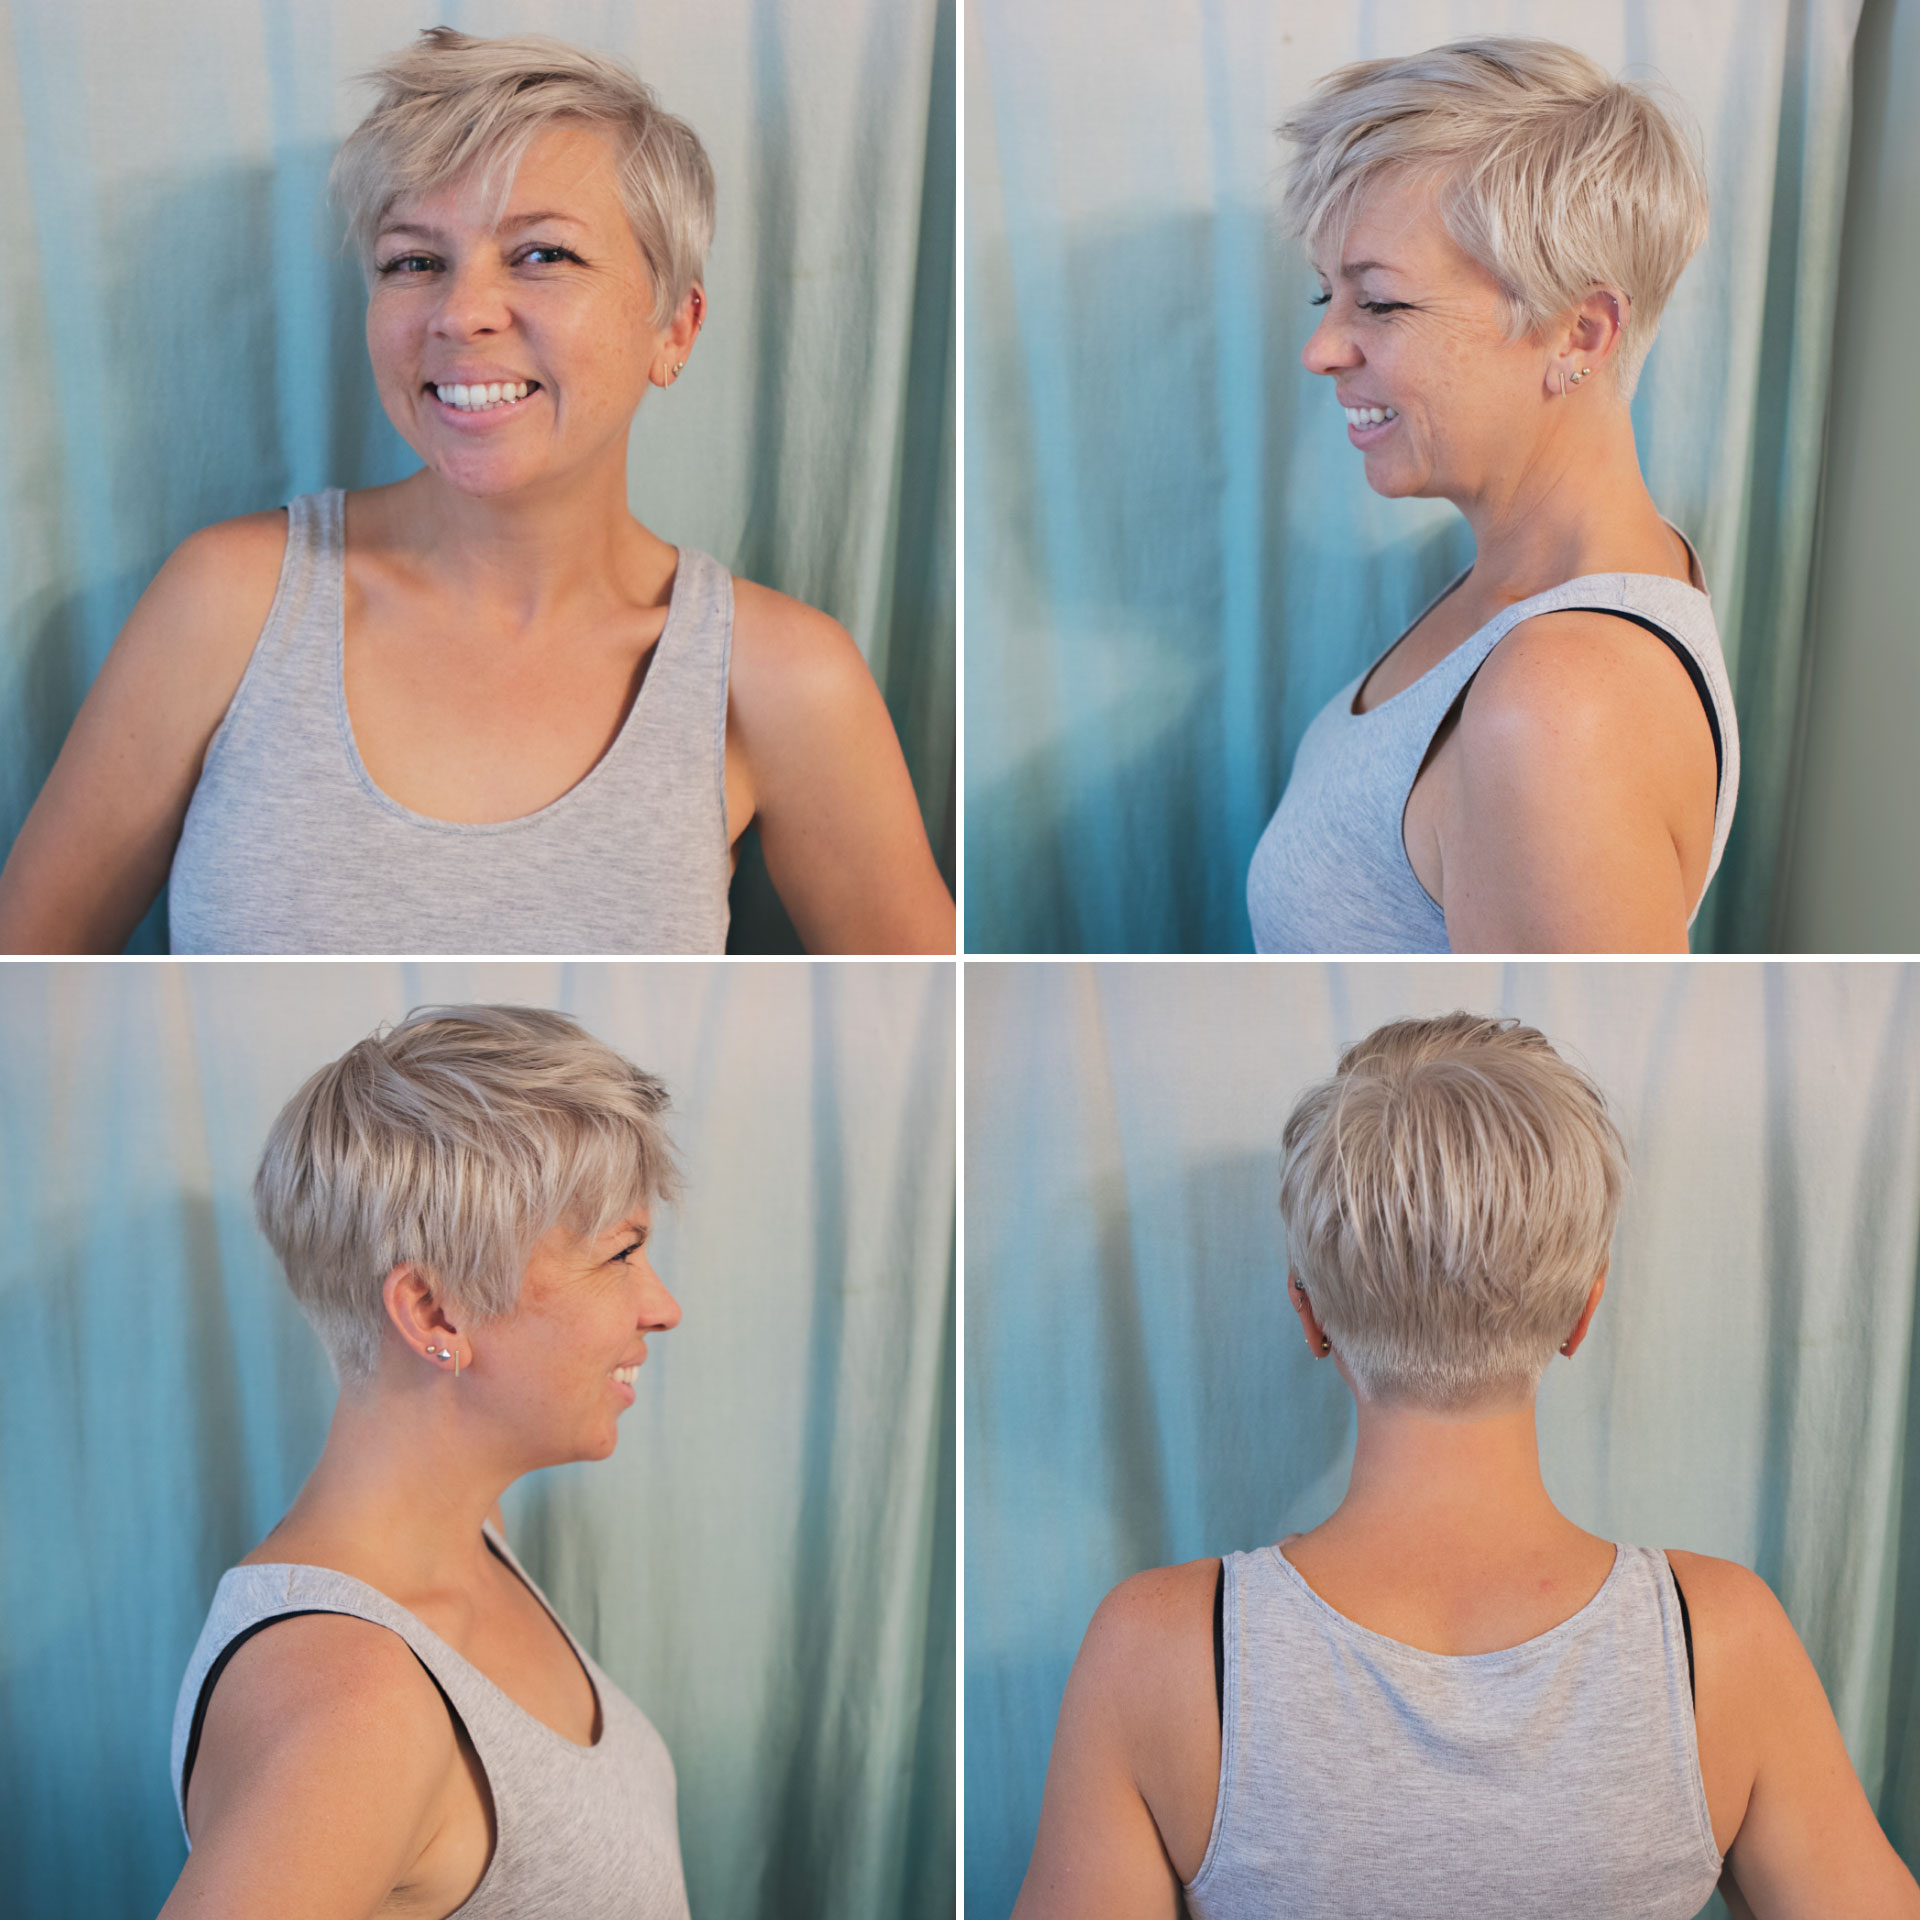 short blonde hair care, hairstory, new wash, amika bust your brass, blonde hair, pixie, pixie 360, short hair